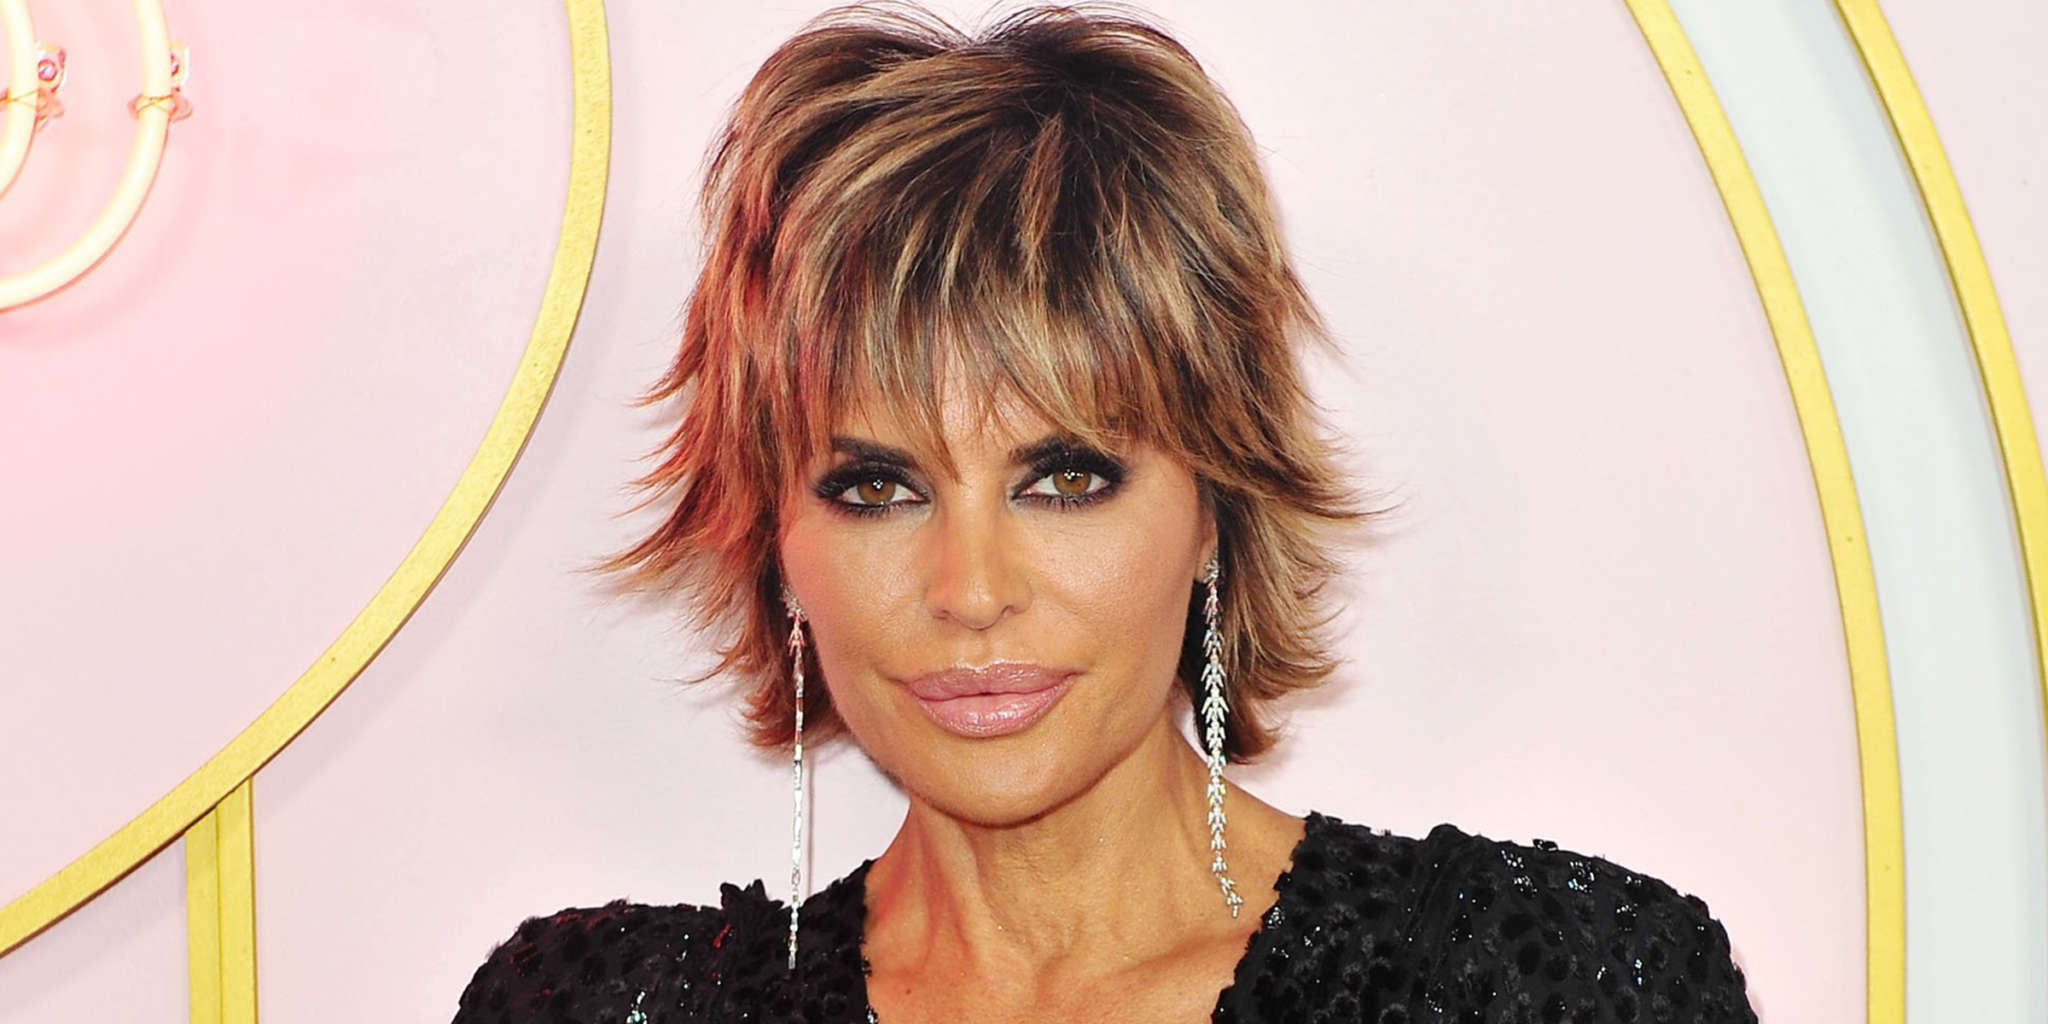 Lisa Rinna Seems To Shade Denise Richards With New Pics From Rome Cast Trip After Brandi Glanville Posts Pic Of Them Kissing